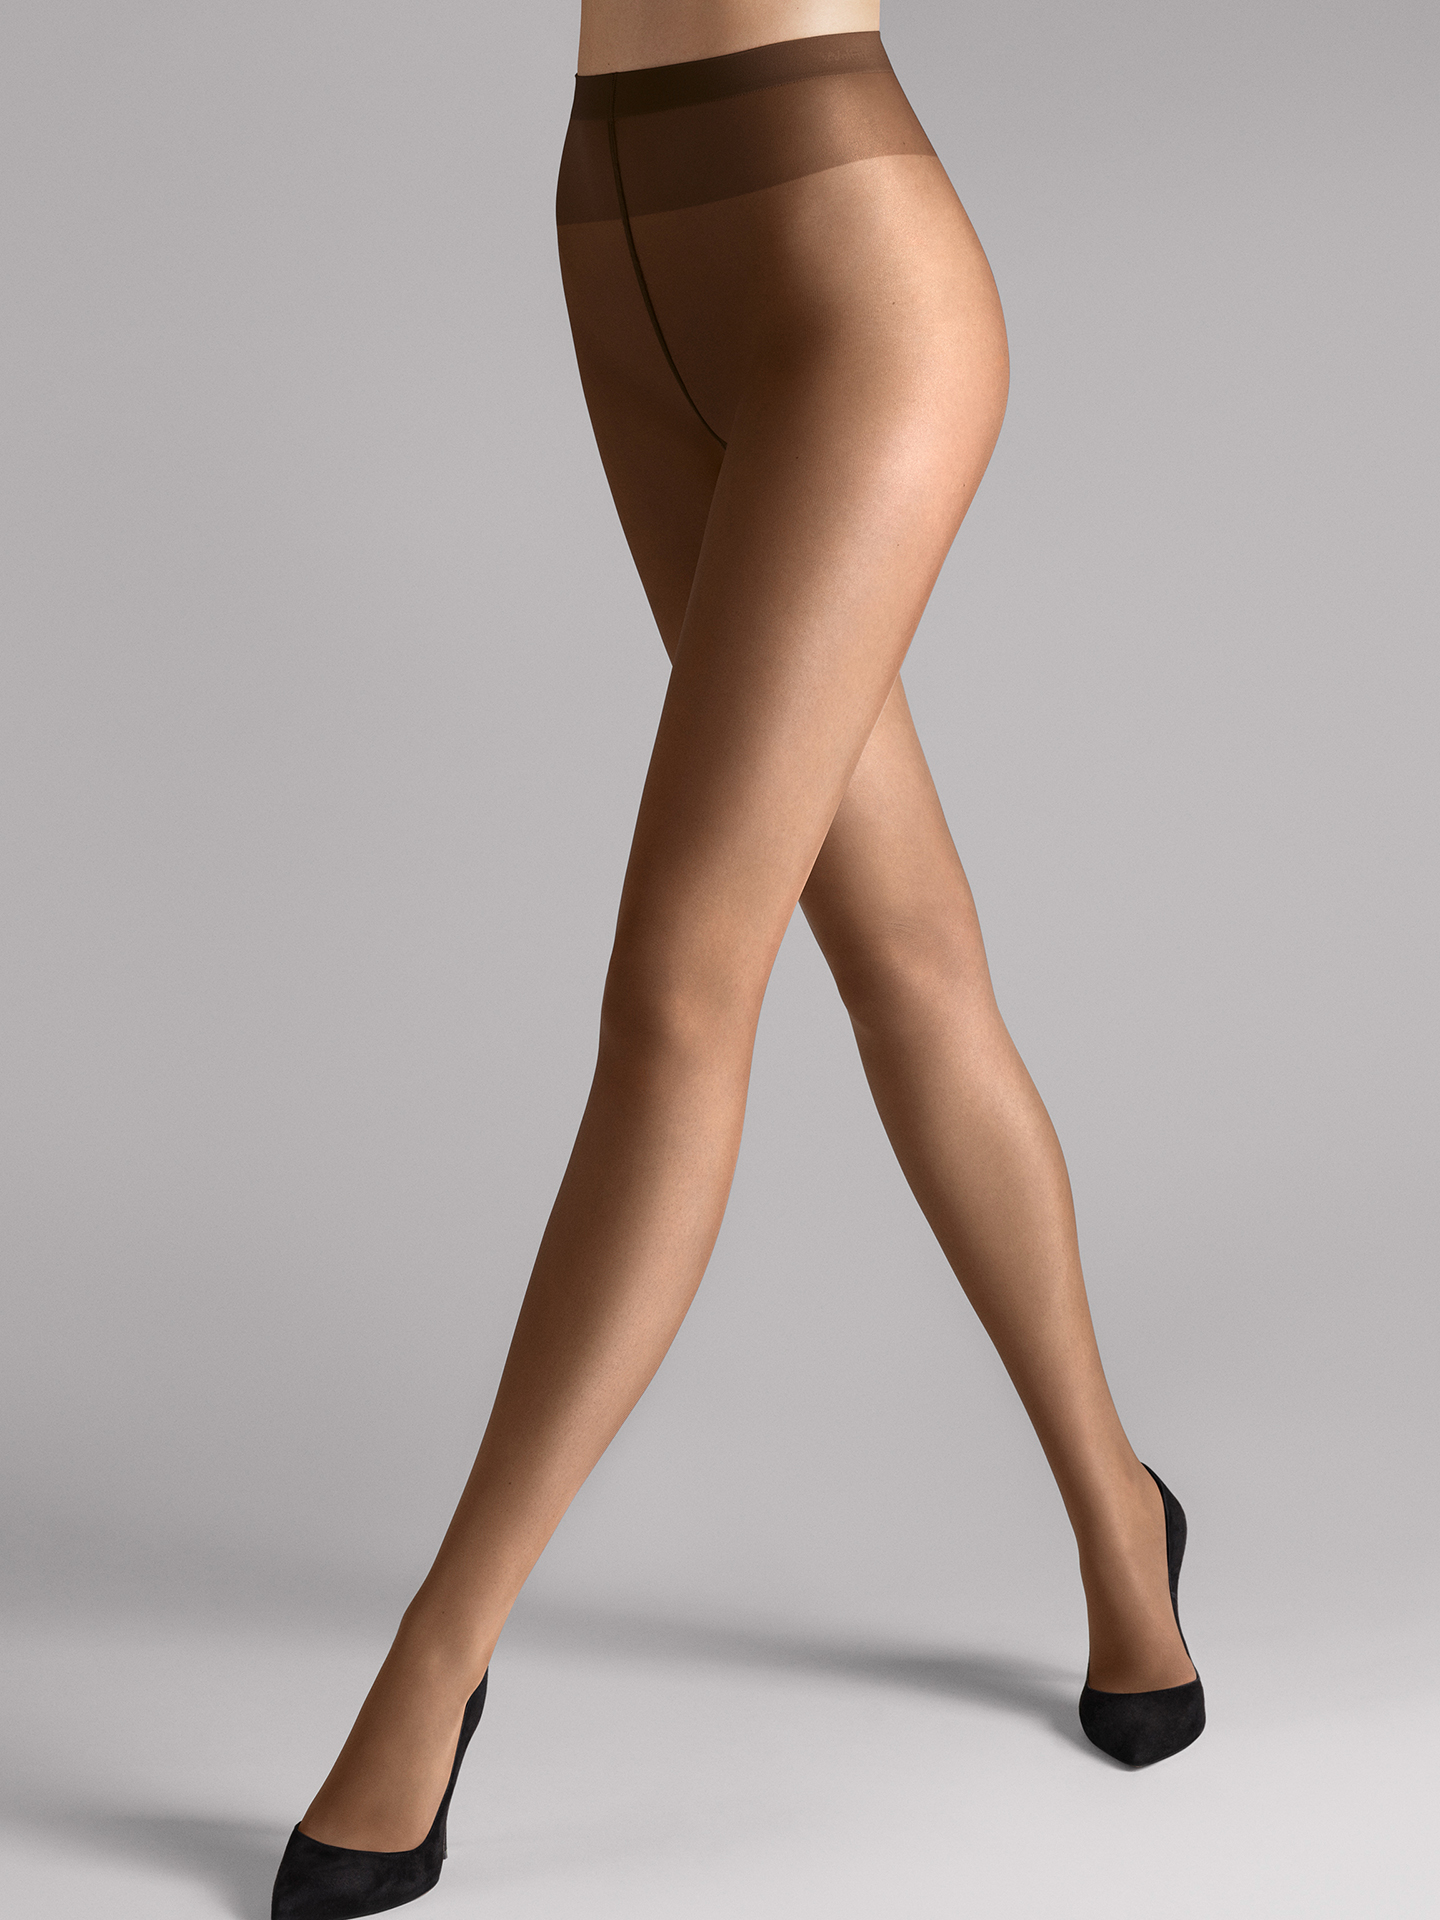 Wolford Apparel & Accessories > Clothing > Collant Sheer 15 - 4023 - XL